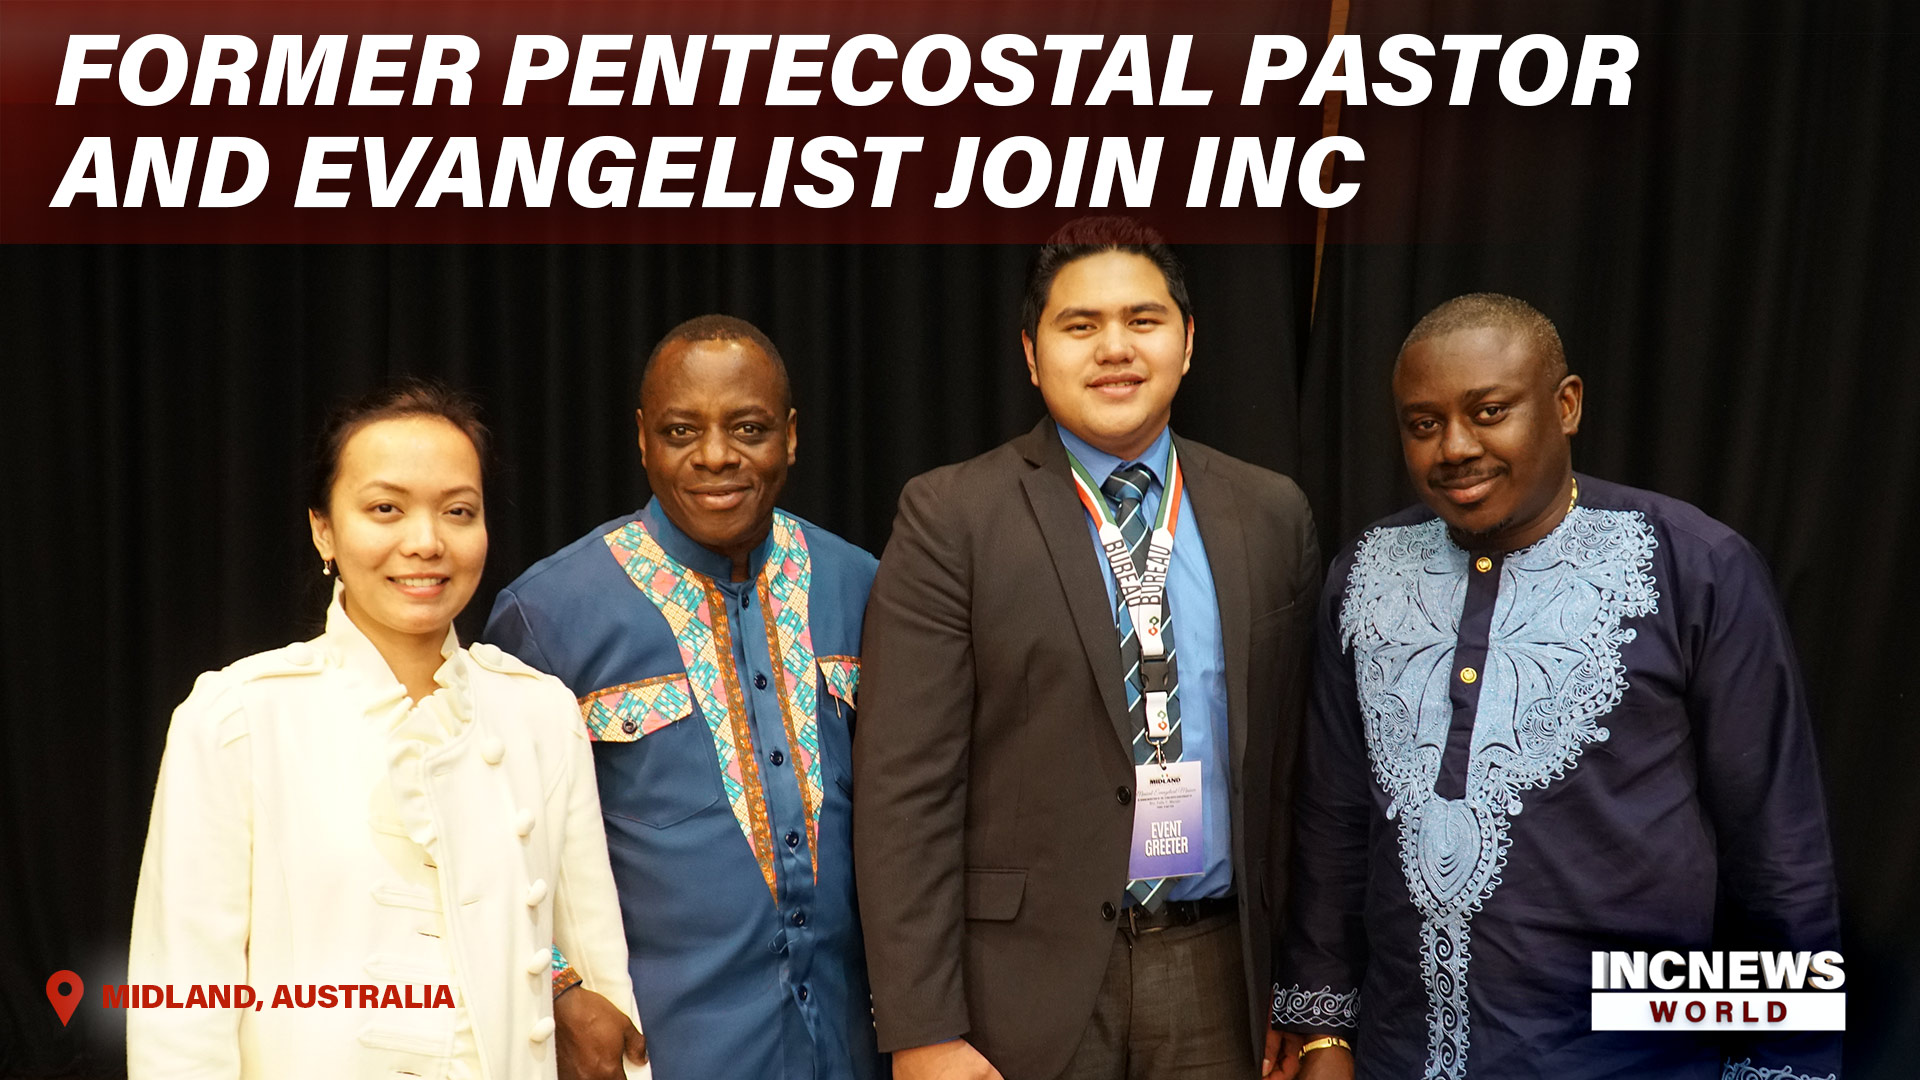 Former Pentecostal Preacher and Evangelist Join INC